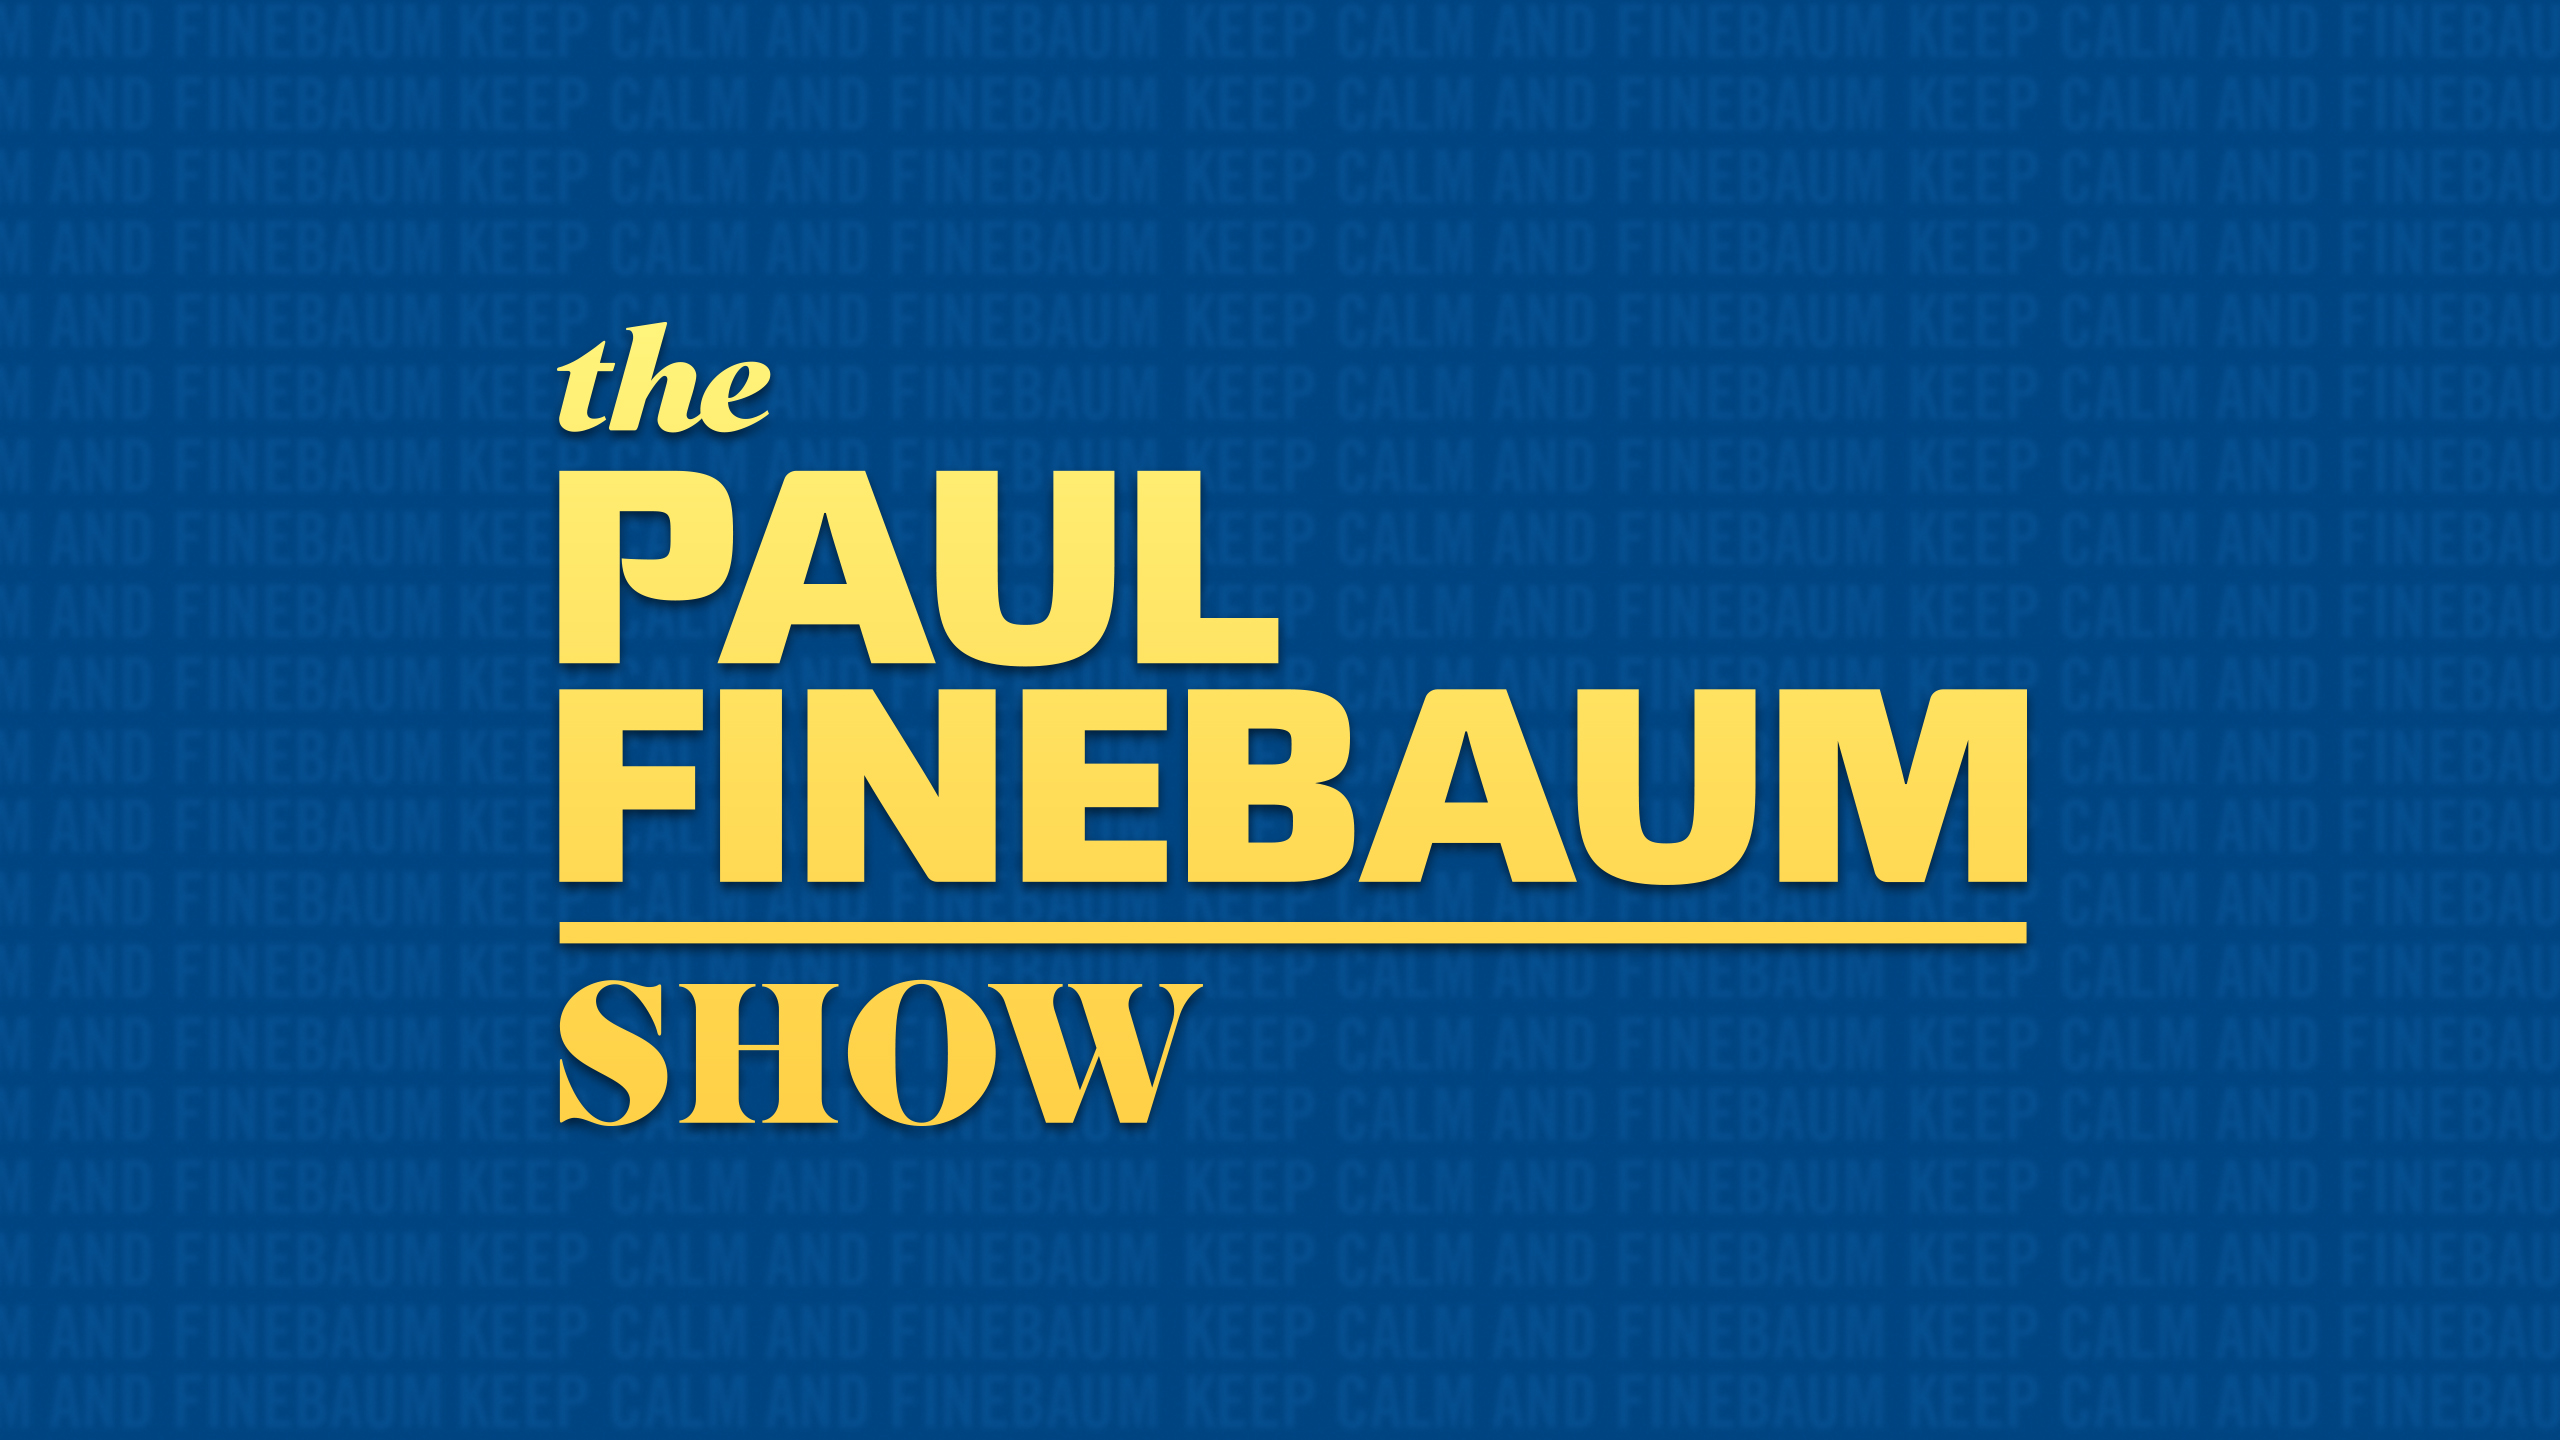 Thu, 12/13 - The Paul Finebaum Show